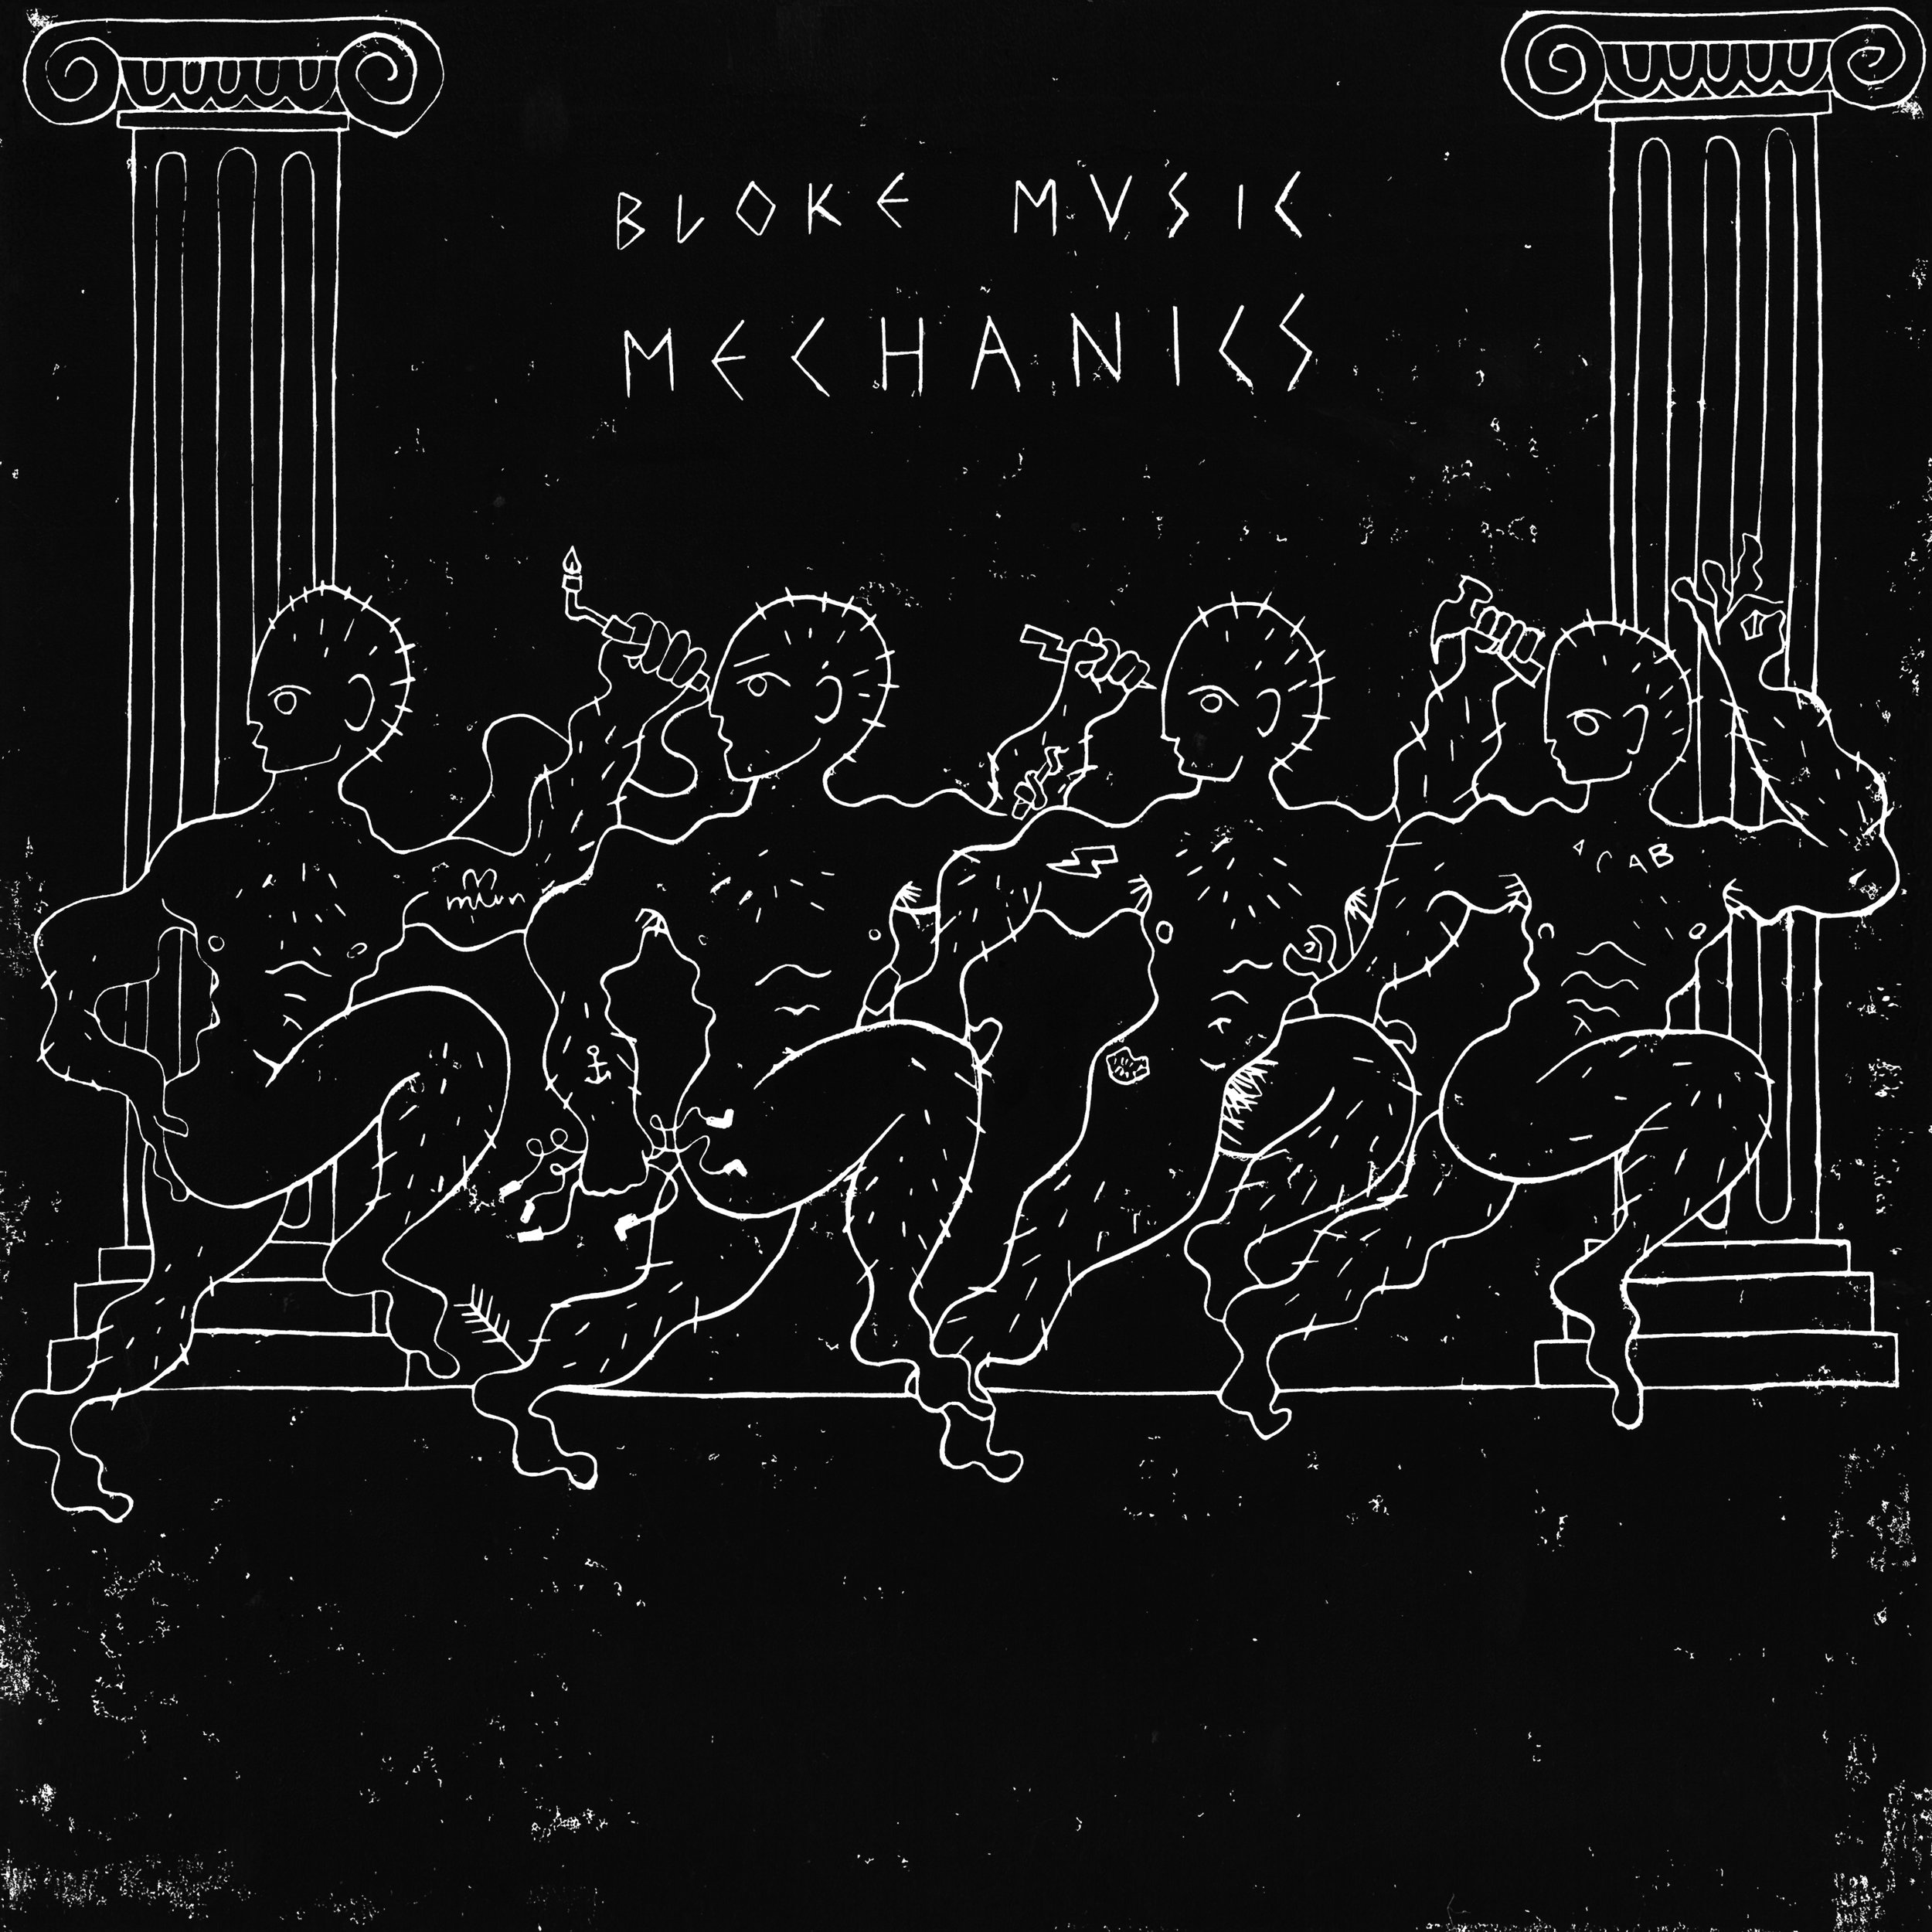 medium resolution of bloke music mechanics